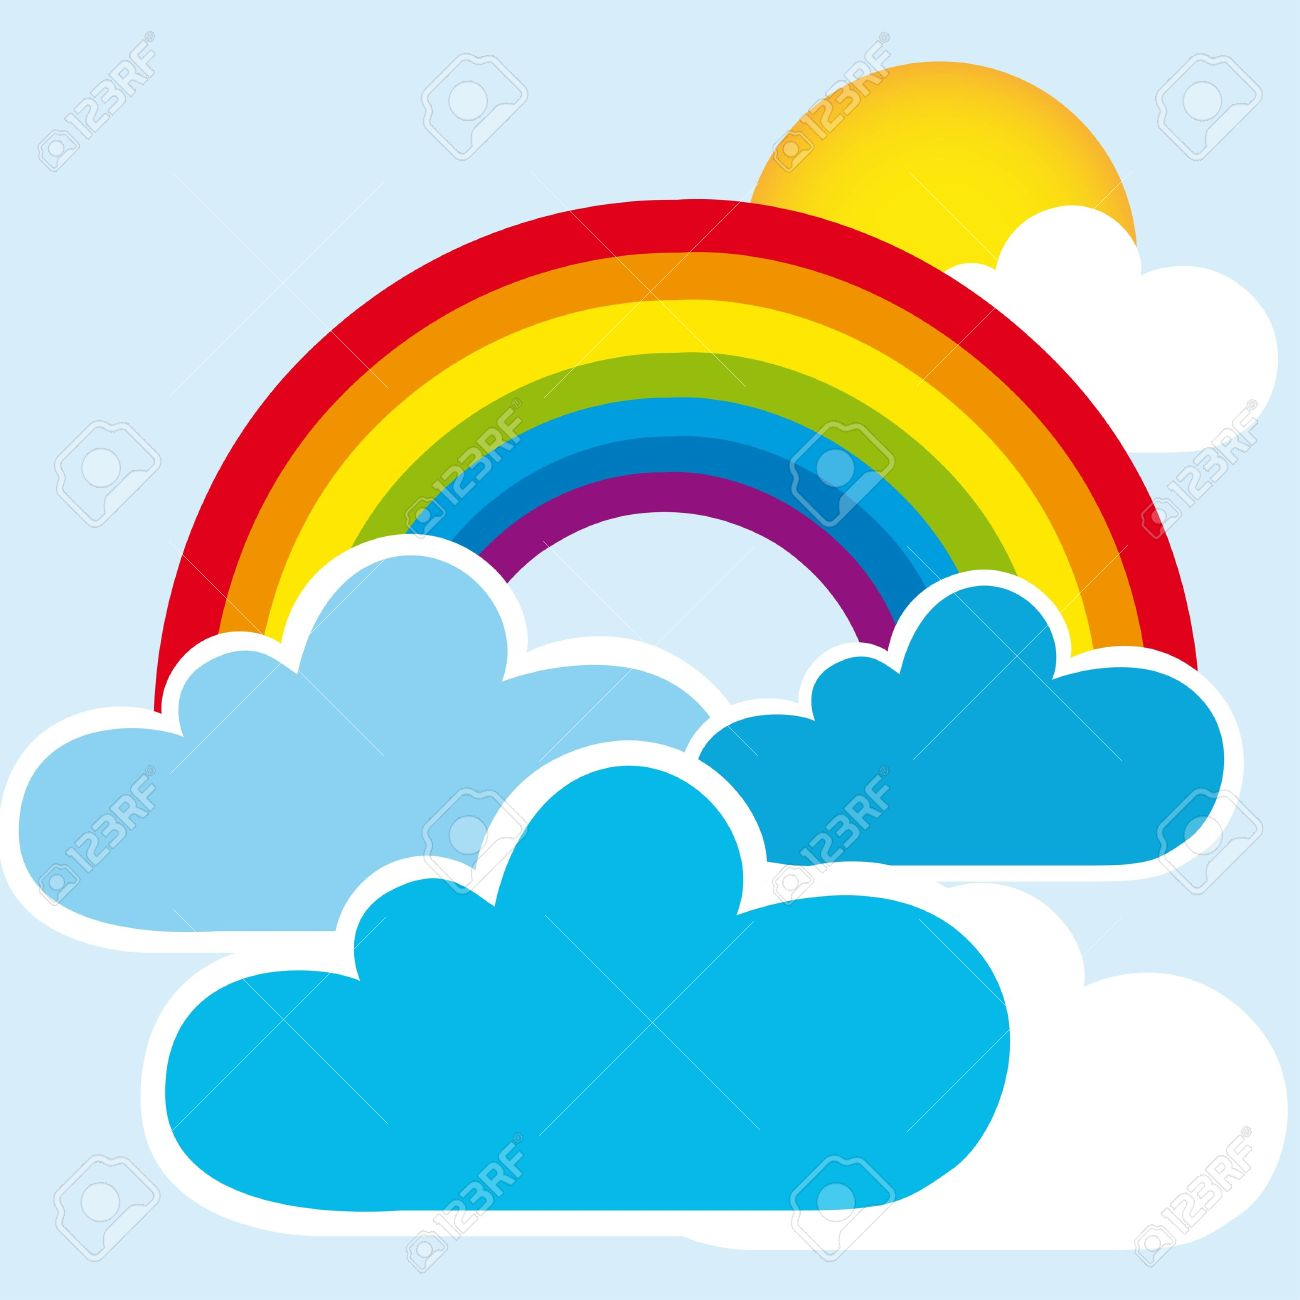 Rainbow And Clouds With Sun, Landscape. Vector Royalty Free.